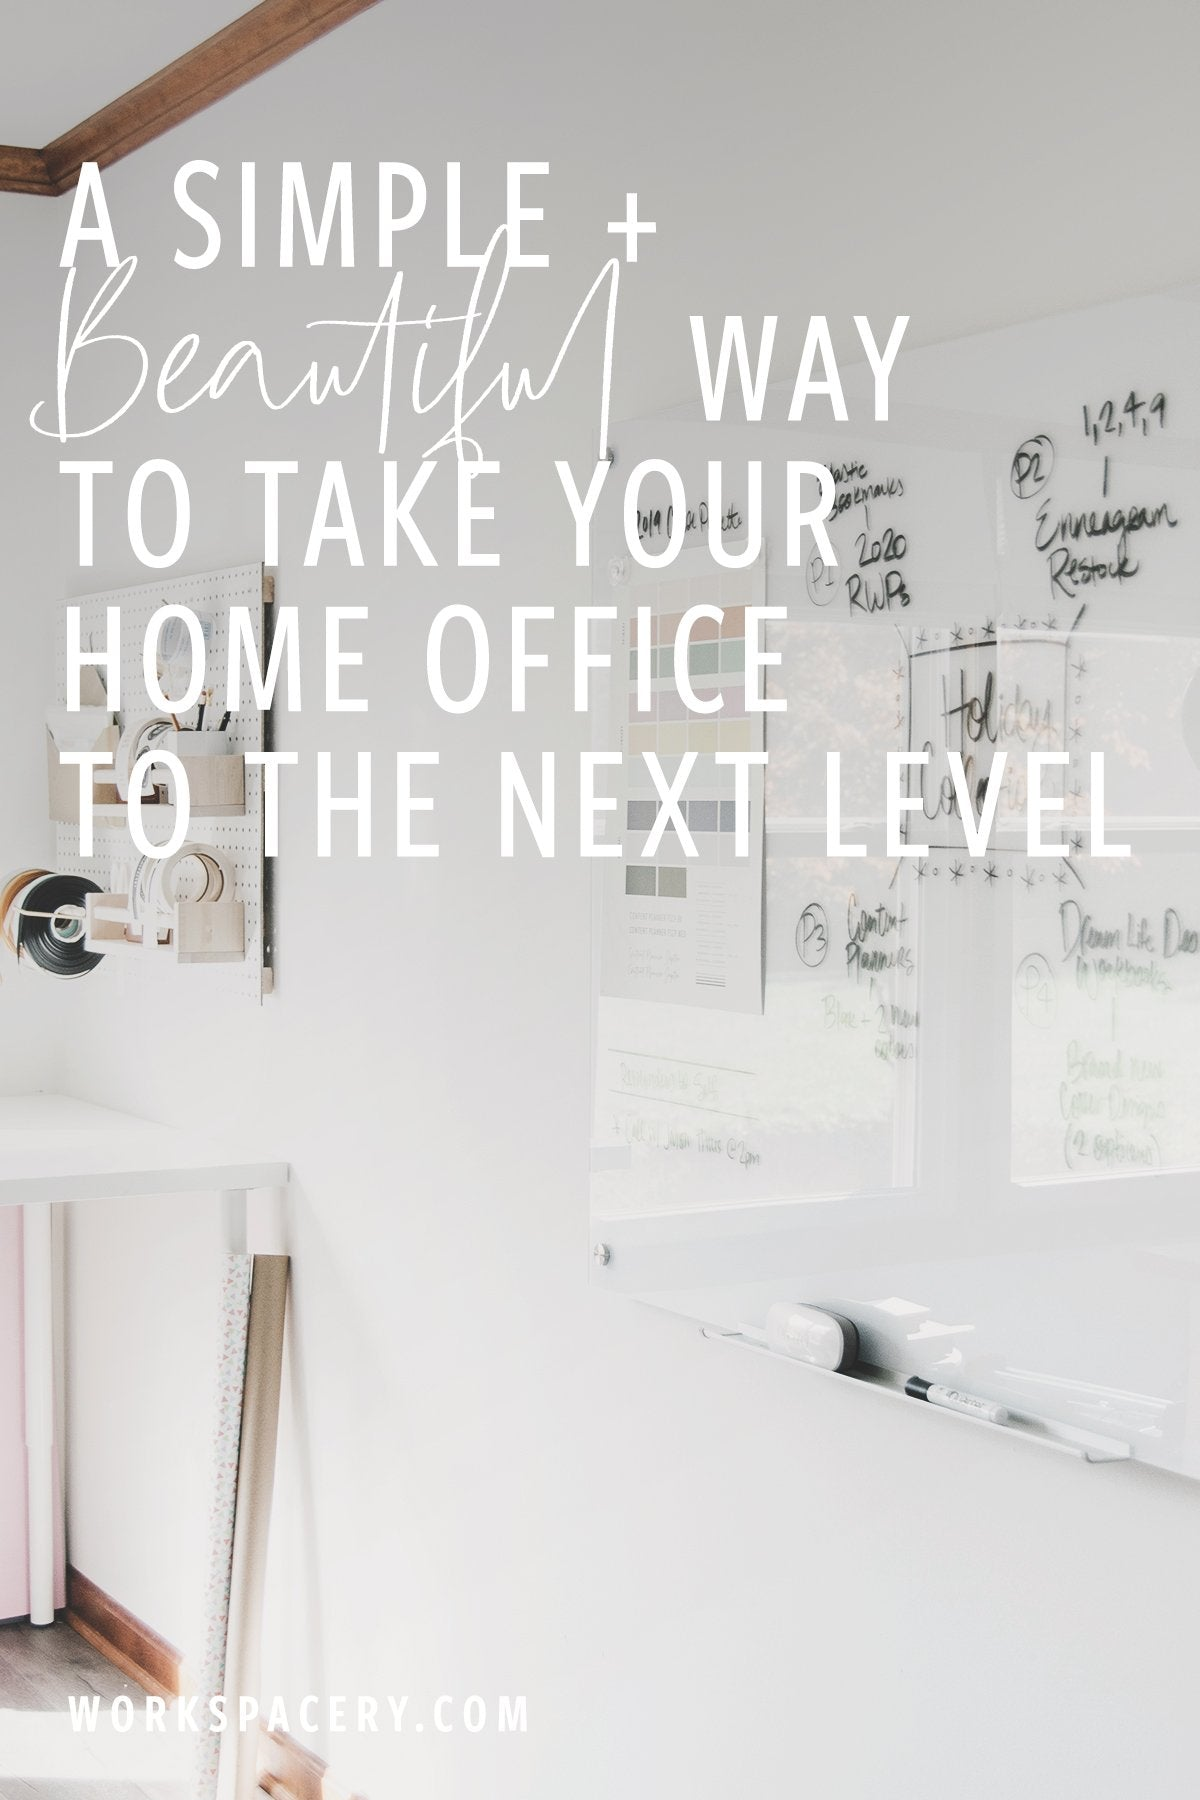 A Simple and Beautiful Way to Take Your Home Office to the Next Level